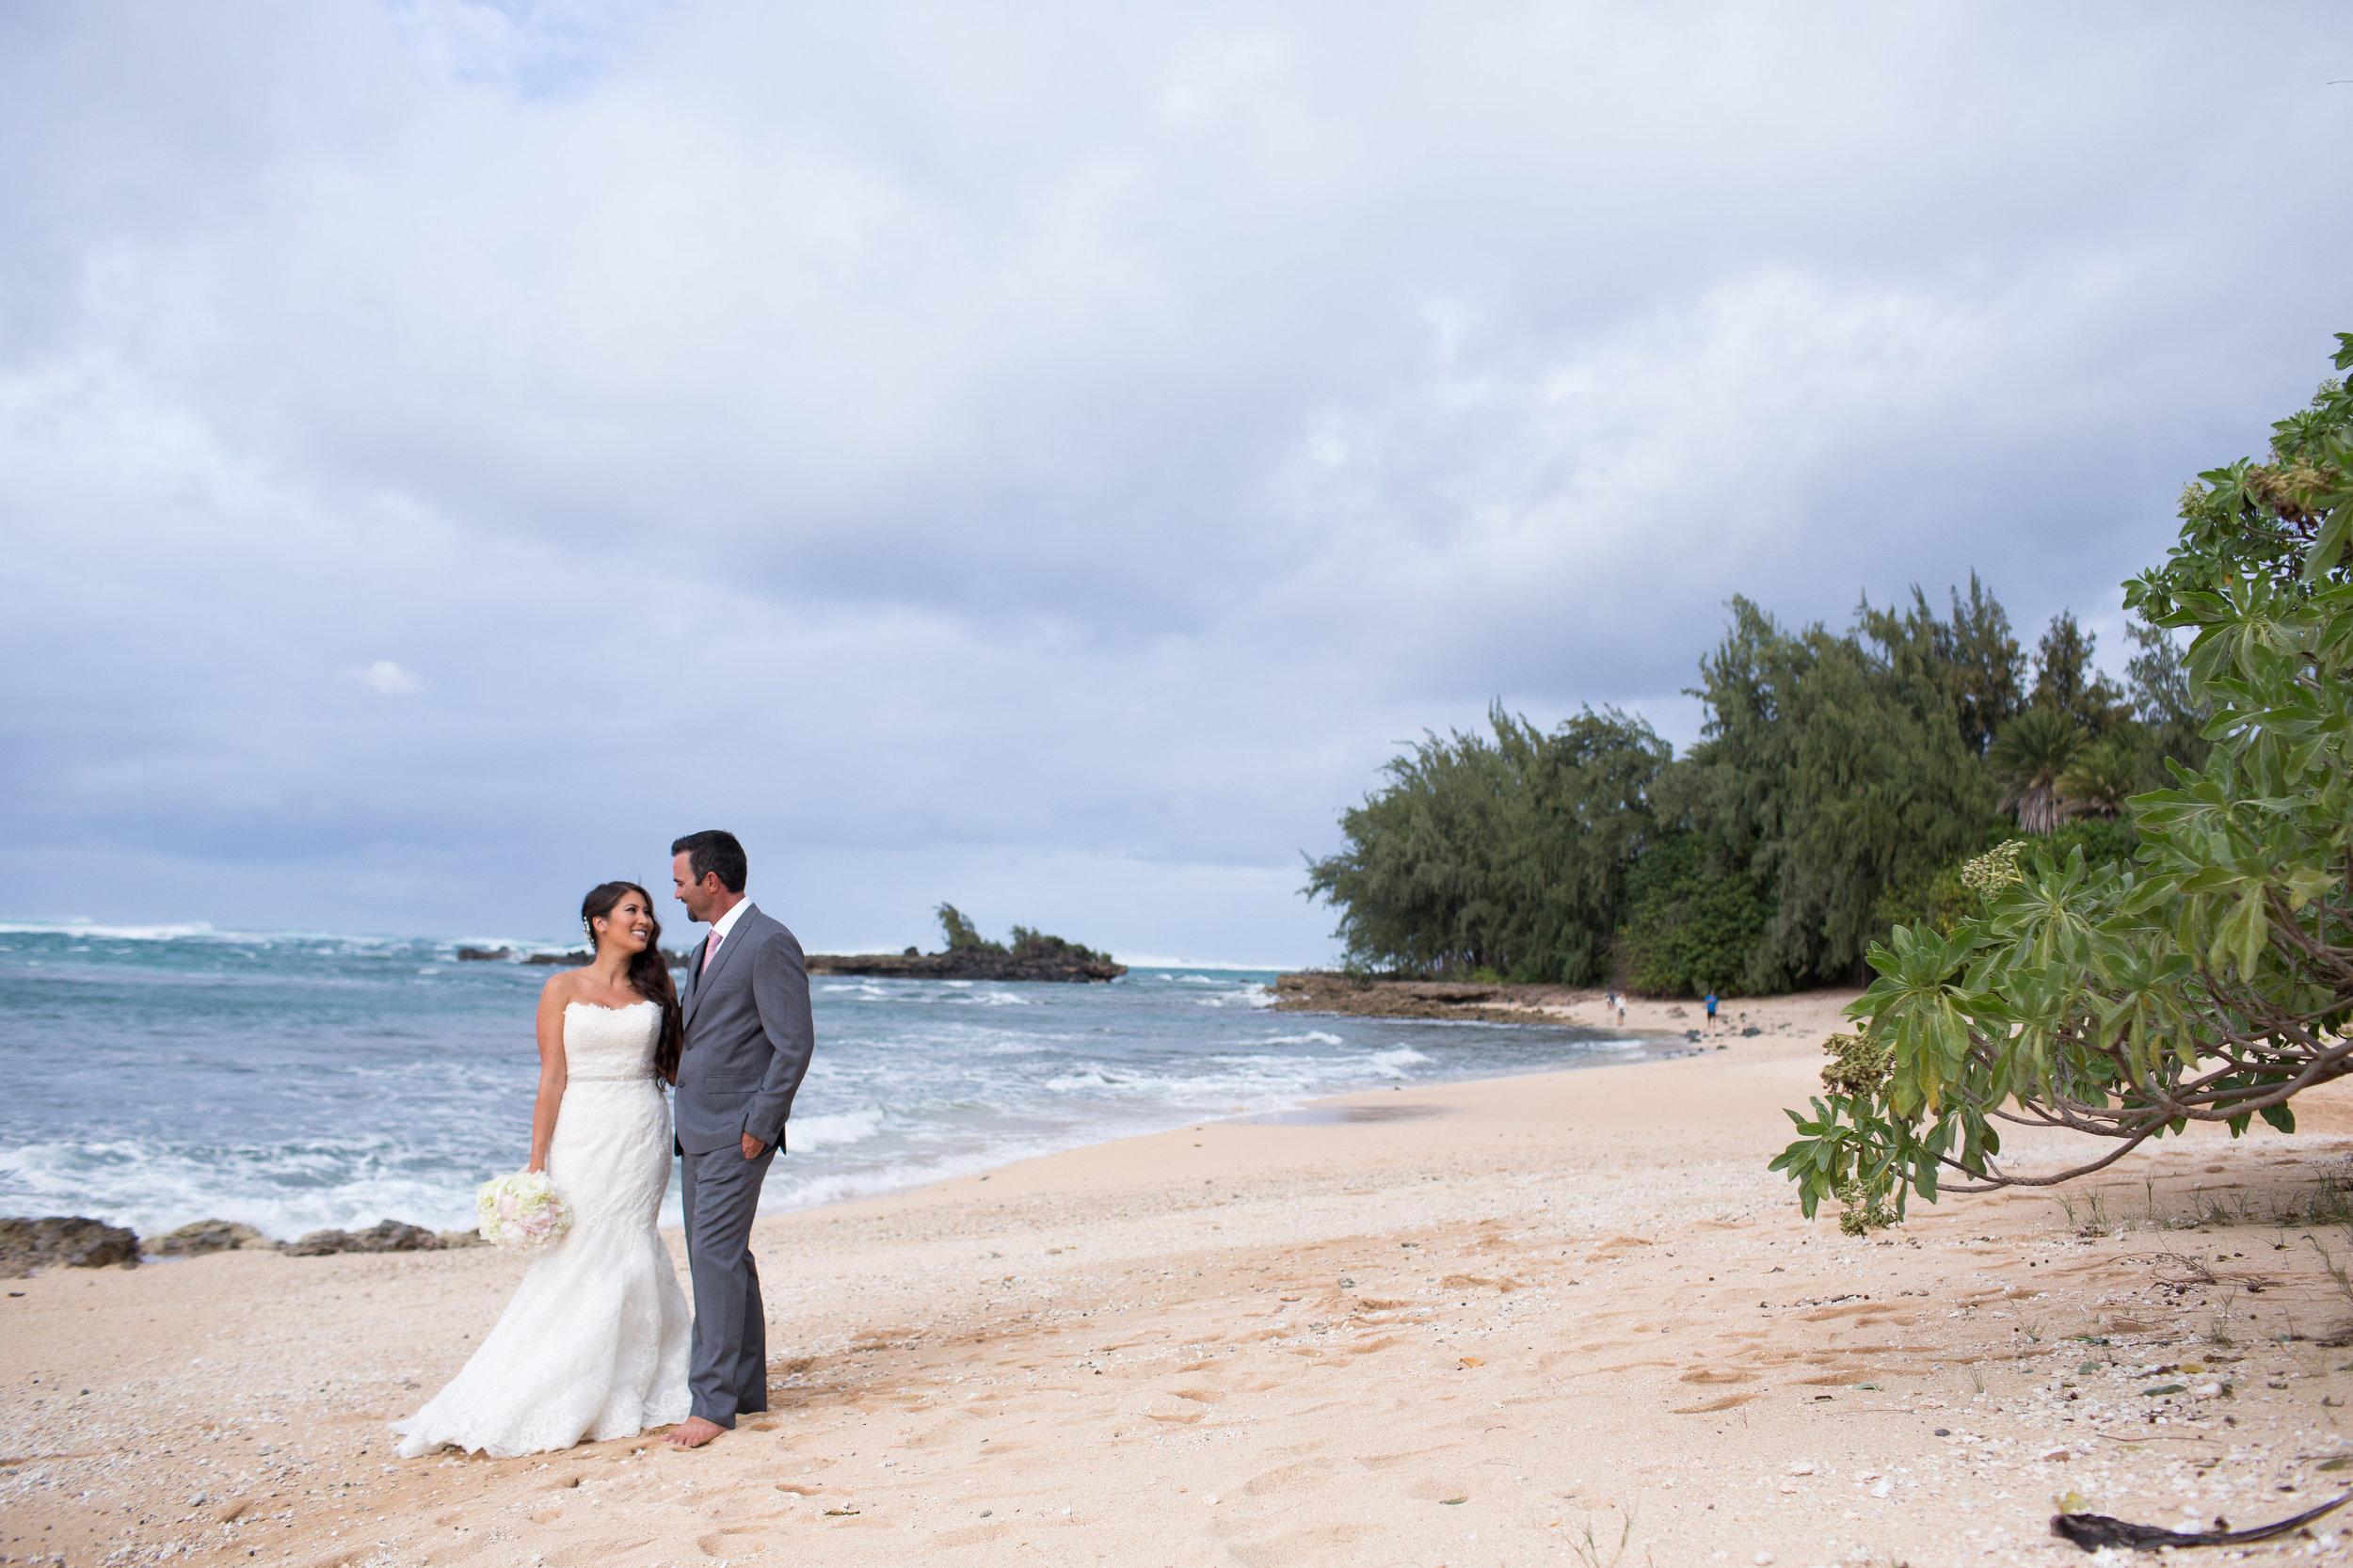 wedding hawaii beach photography.jpg